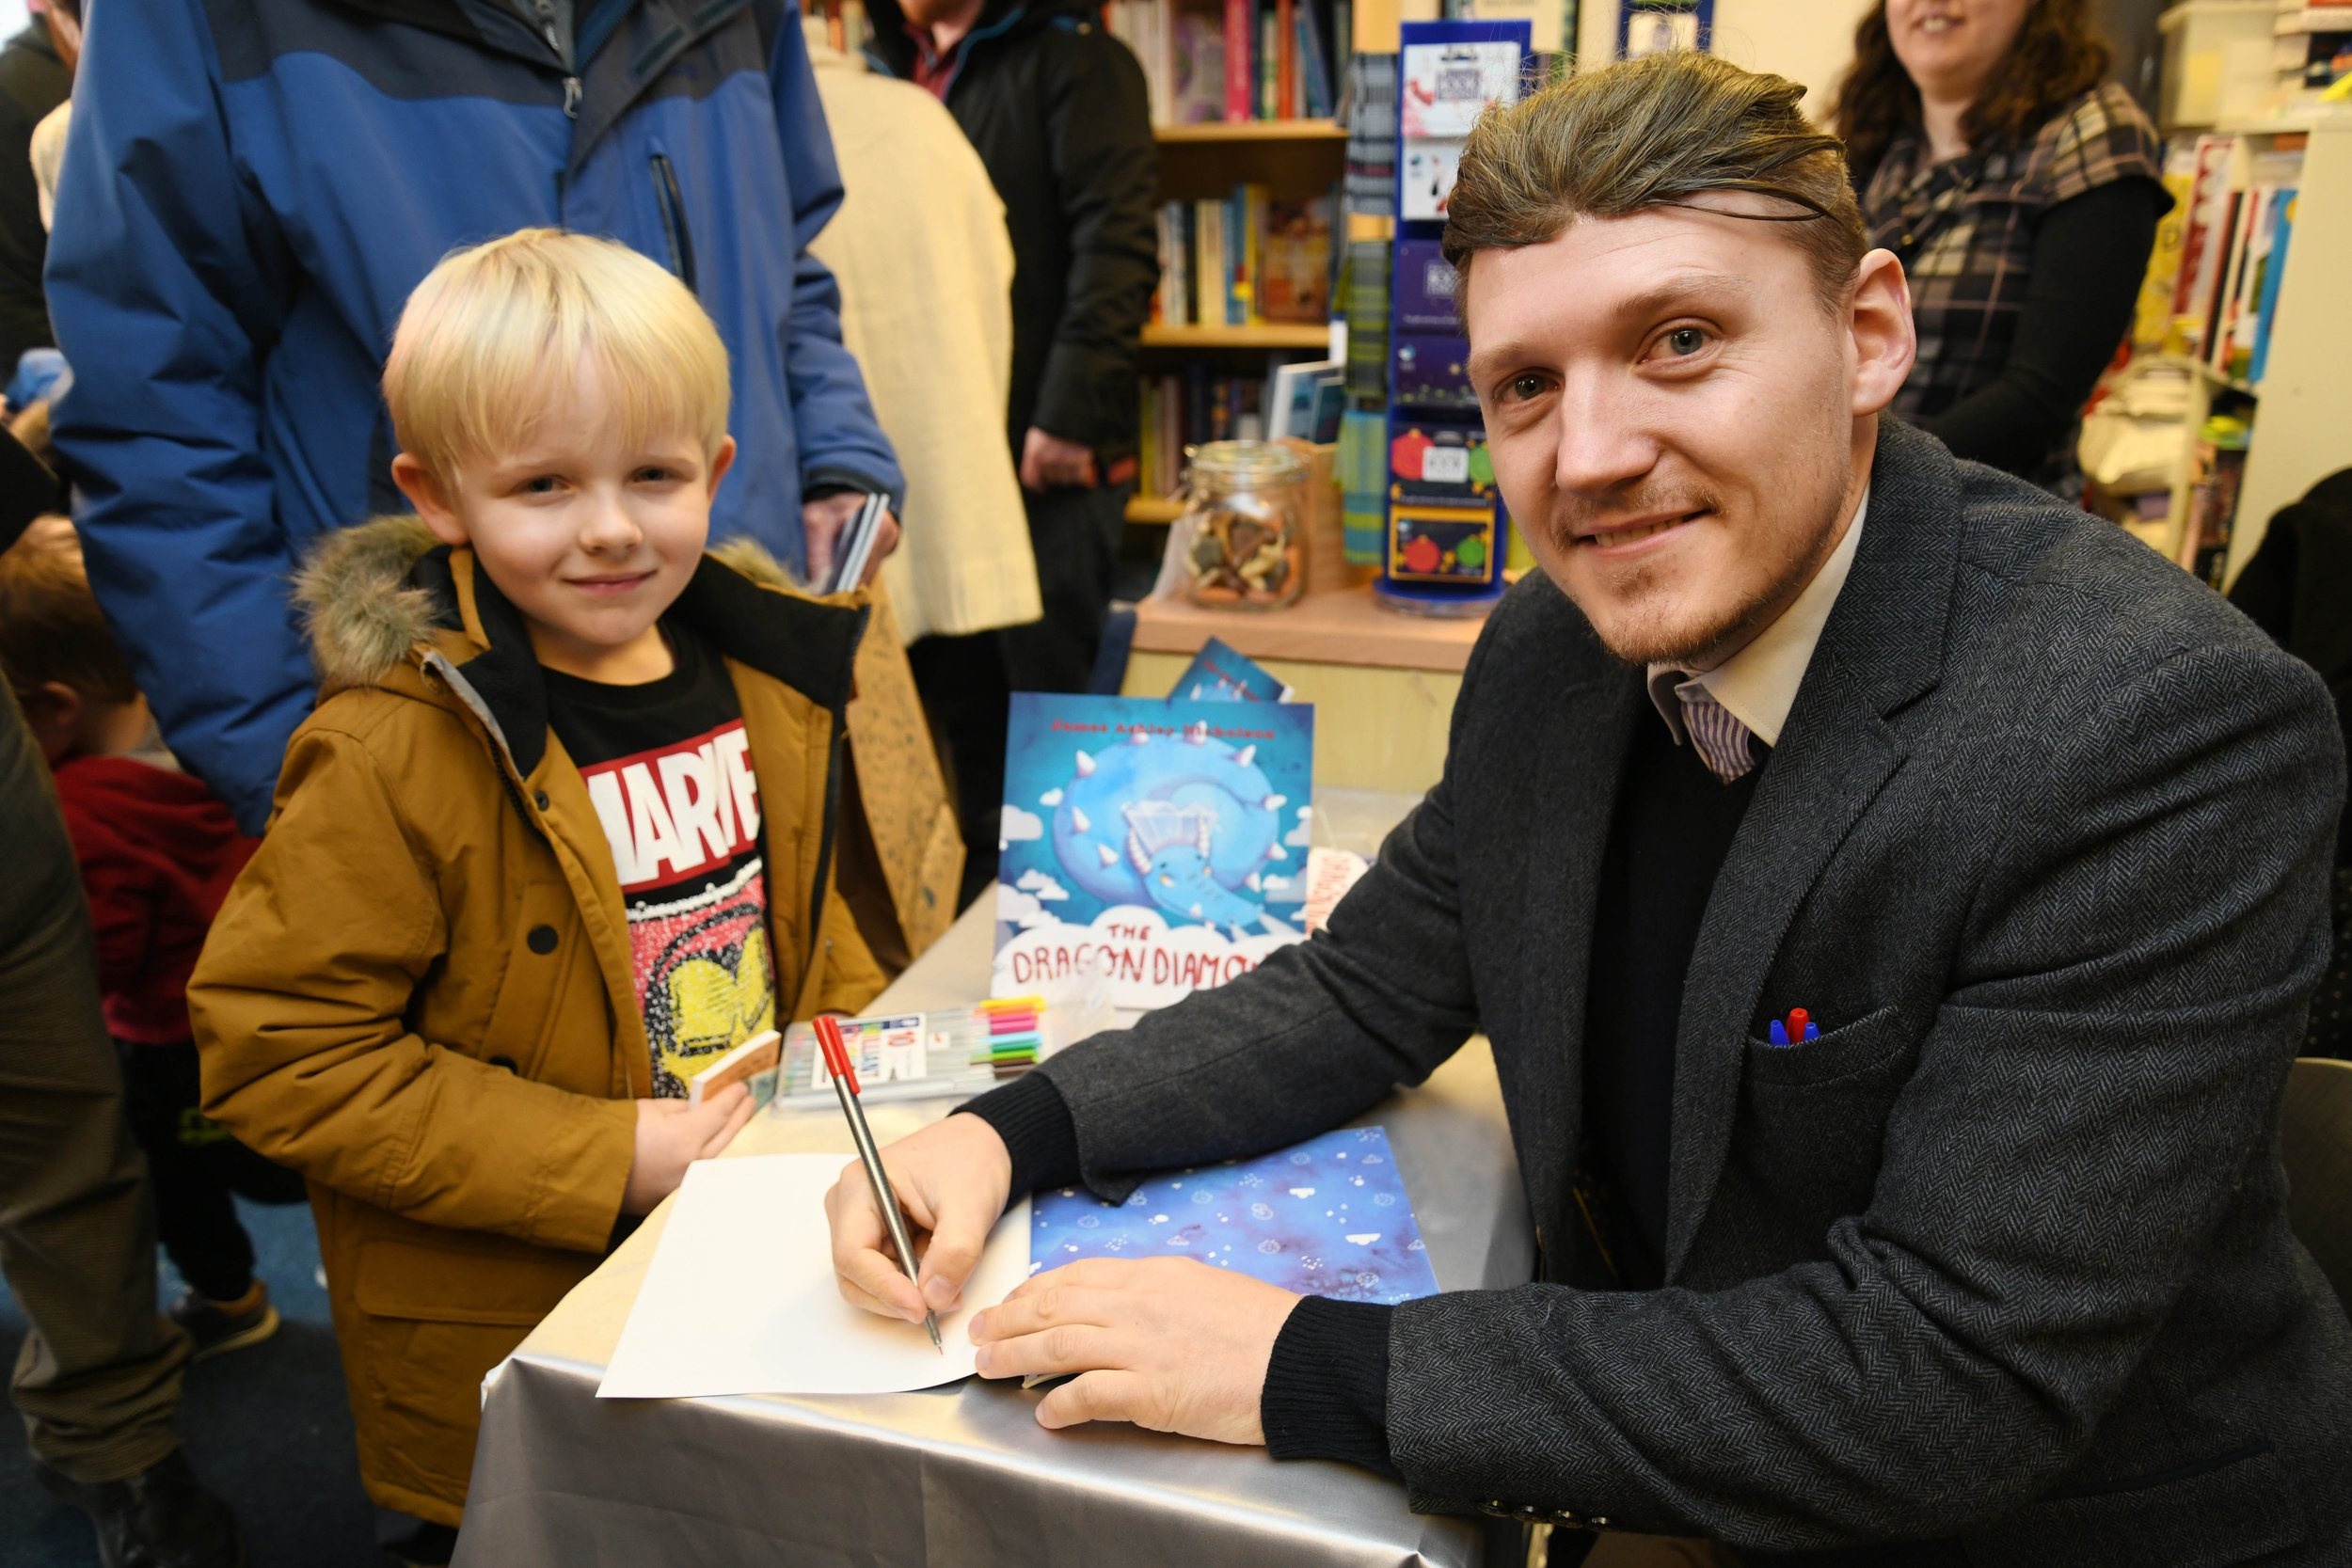 James Nicholson, author of The Dragon Diamond with Olly Campbell-Mitchell at The Book Corner signing event.